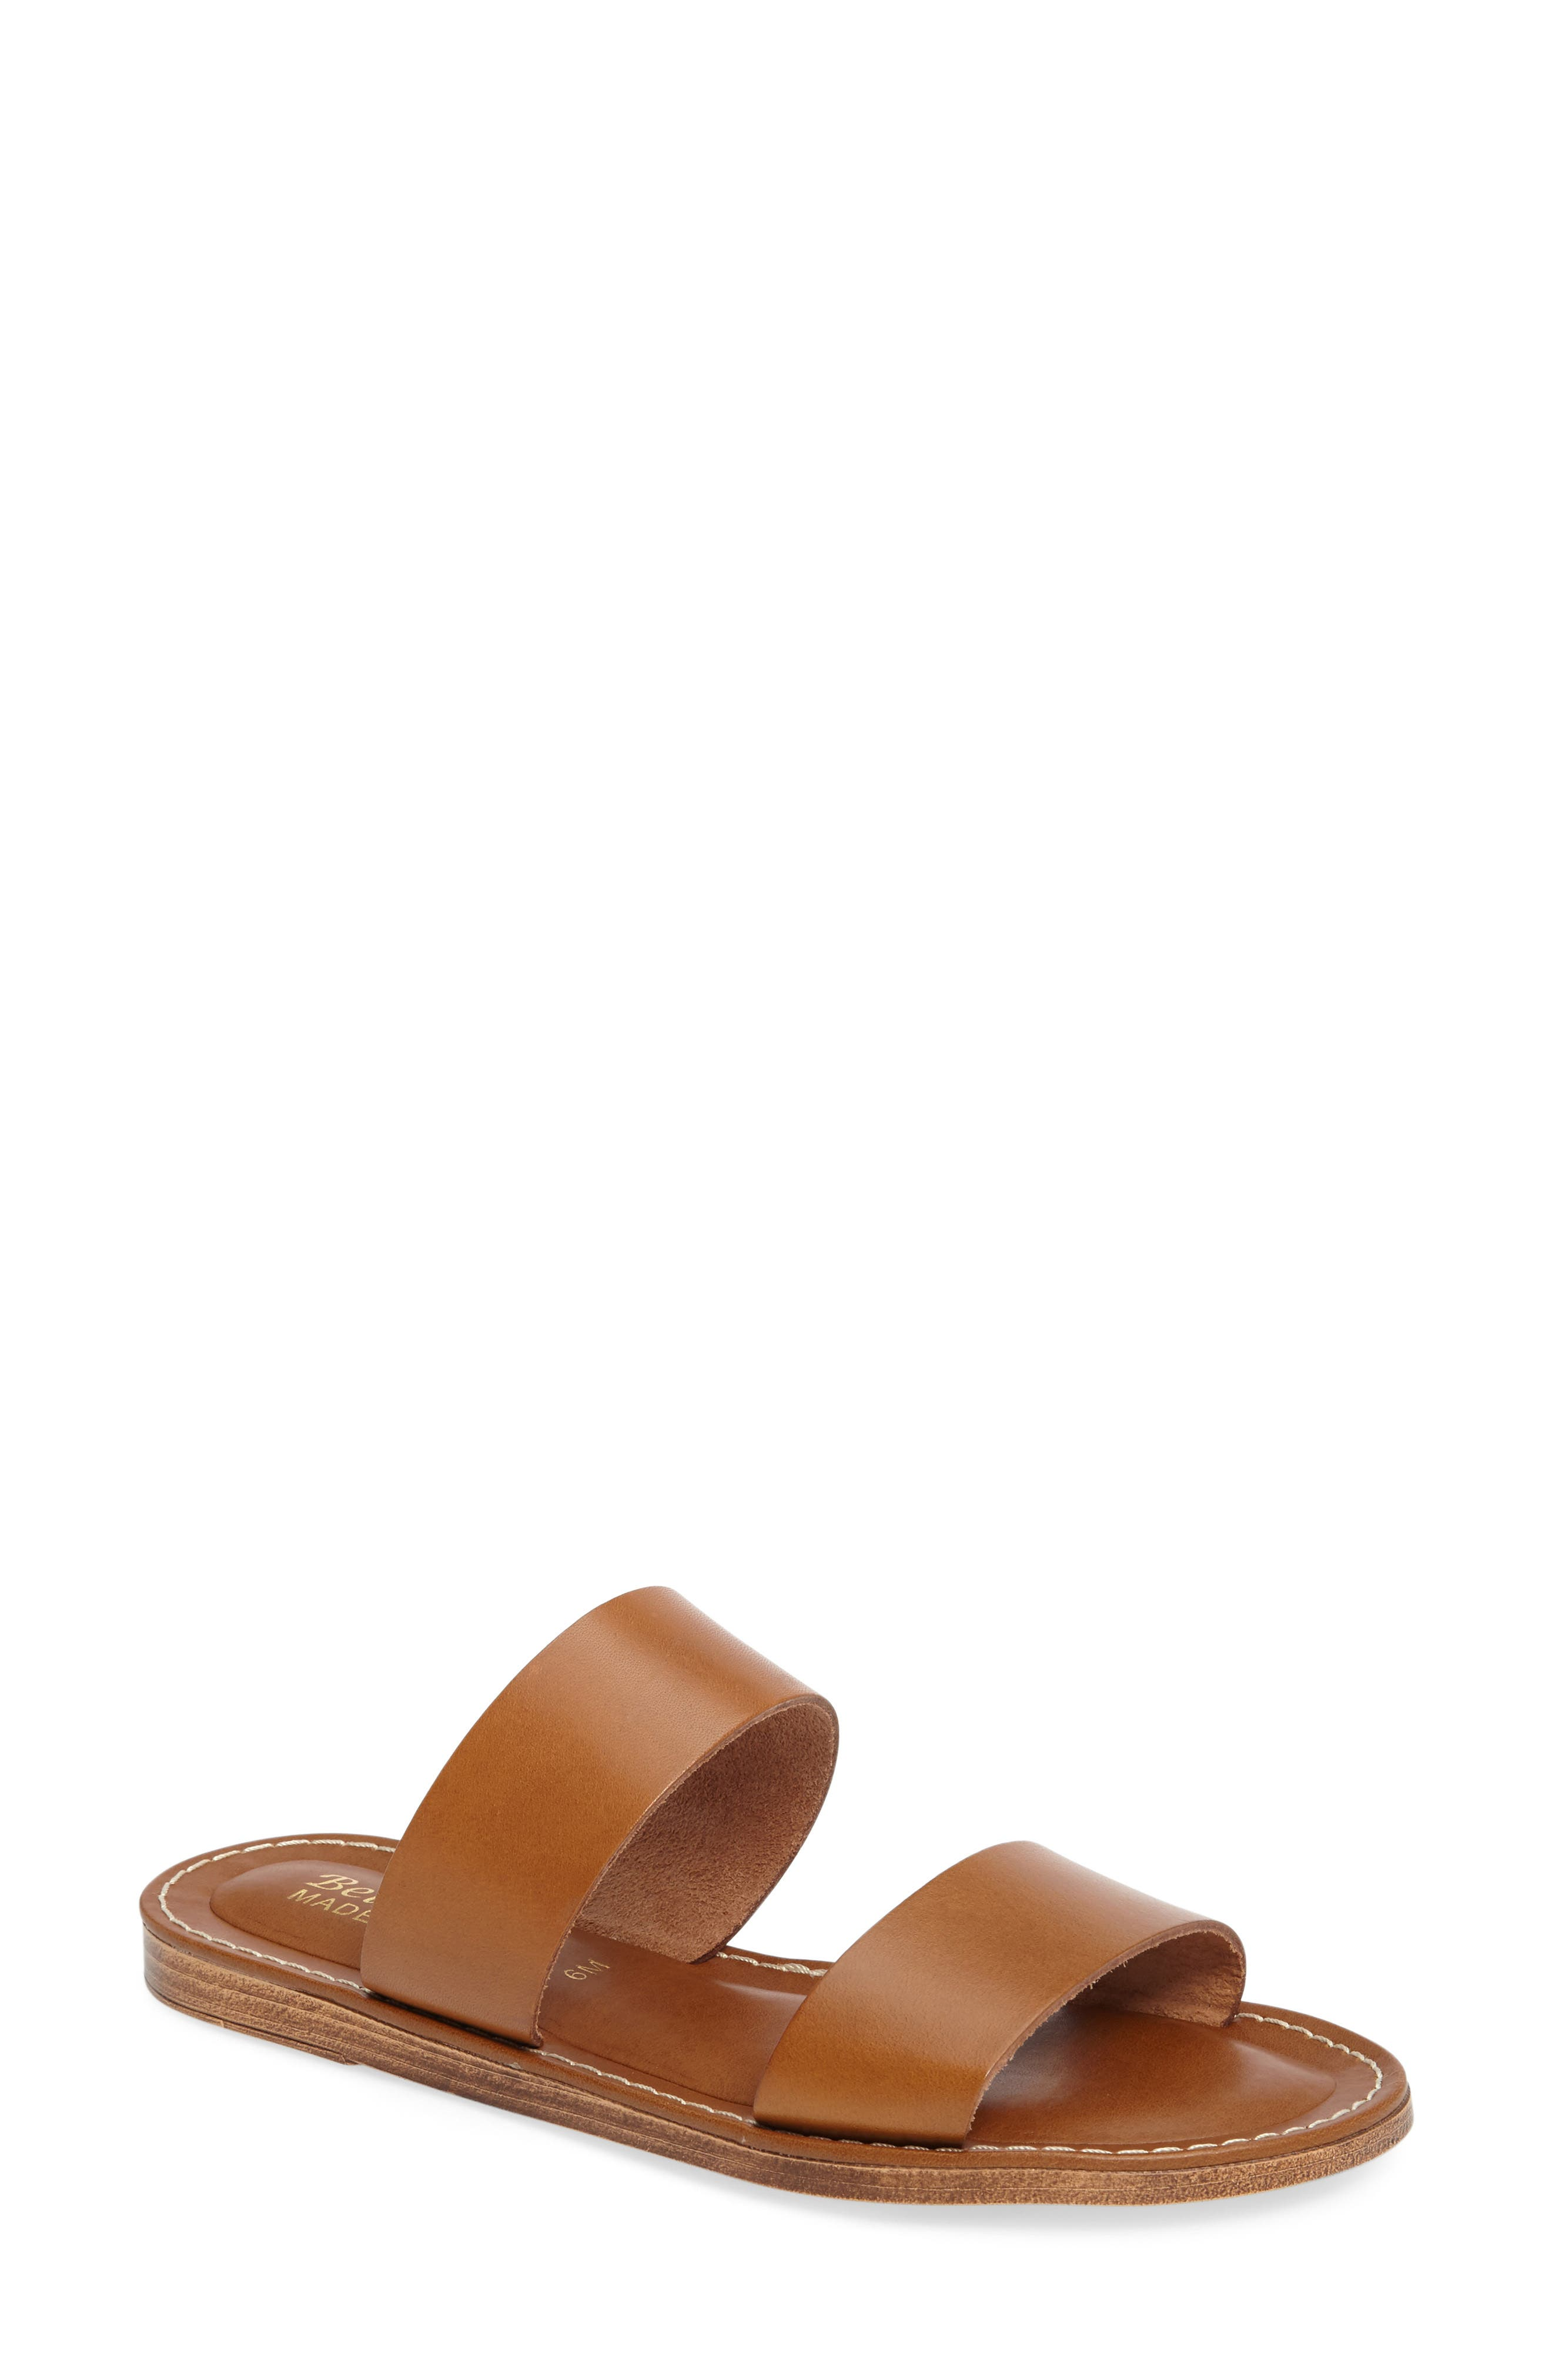 Alternate Image 1 Selected - Bella Vita Imo Slide Sandal (Women)